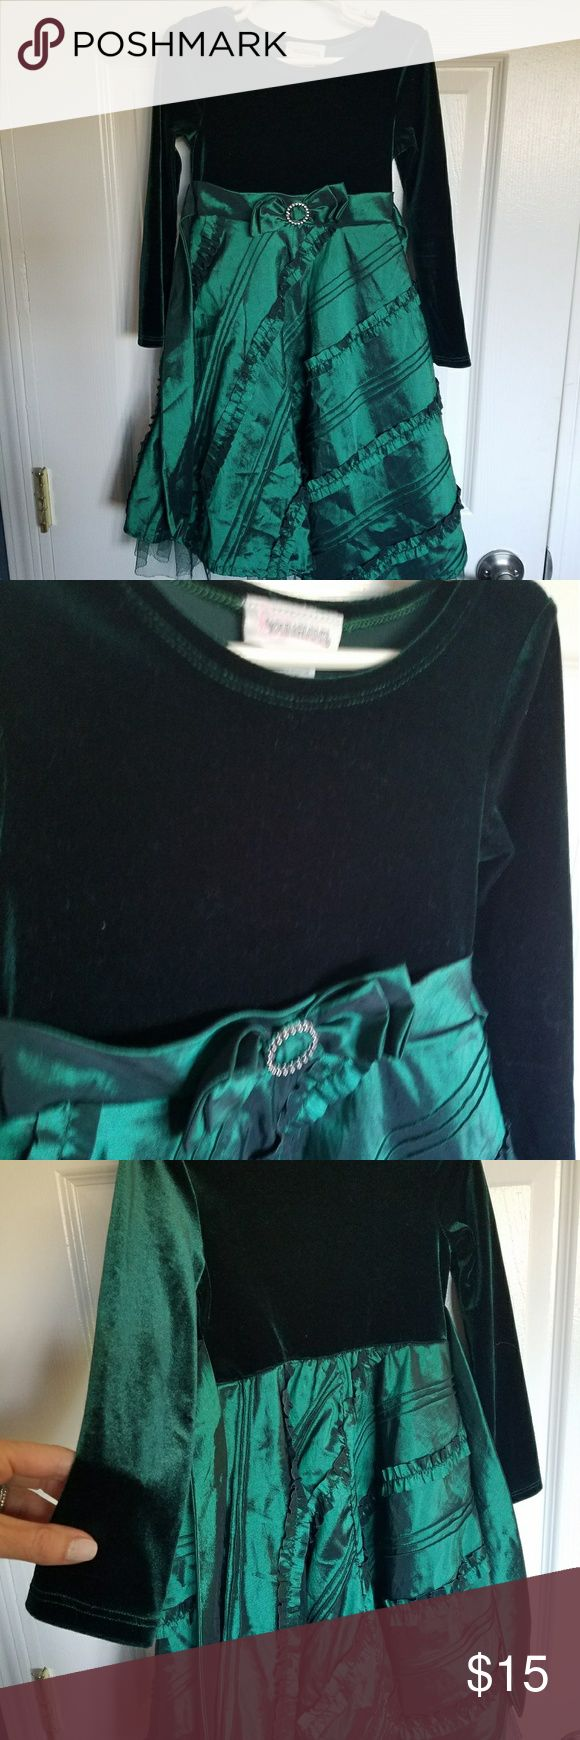 Green Girls Dress with velvet top size 5 Green velvet dress with organza like material skirt  Worn once  Comes from a smoke free home   Make me an offer  Bundle and save  Brand: Youngland Youngland Dresses